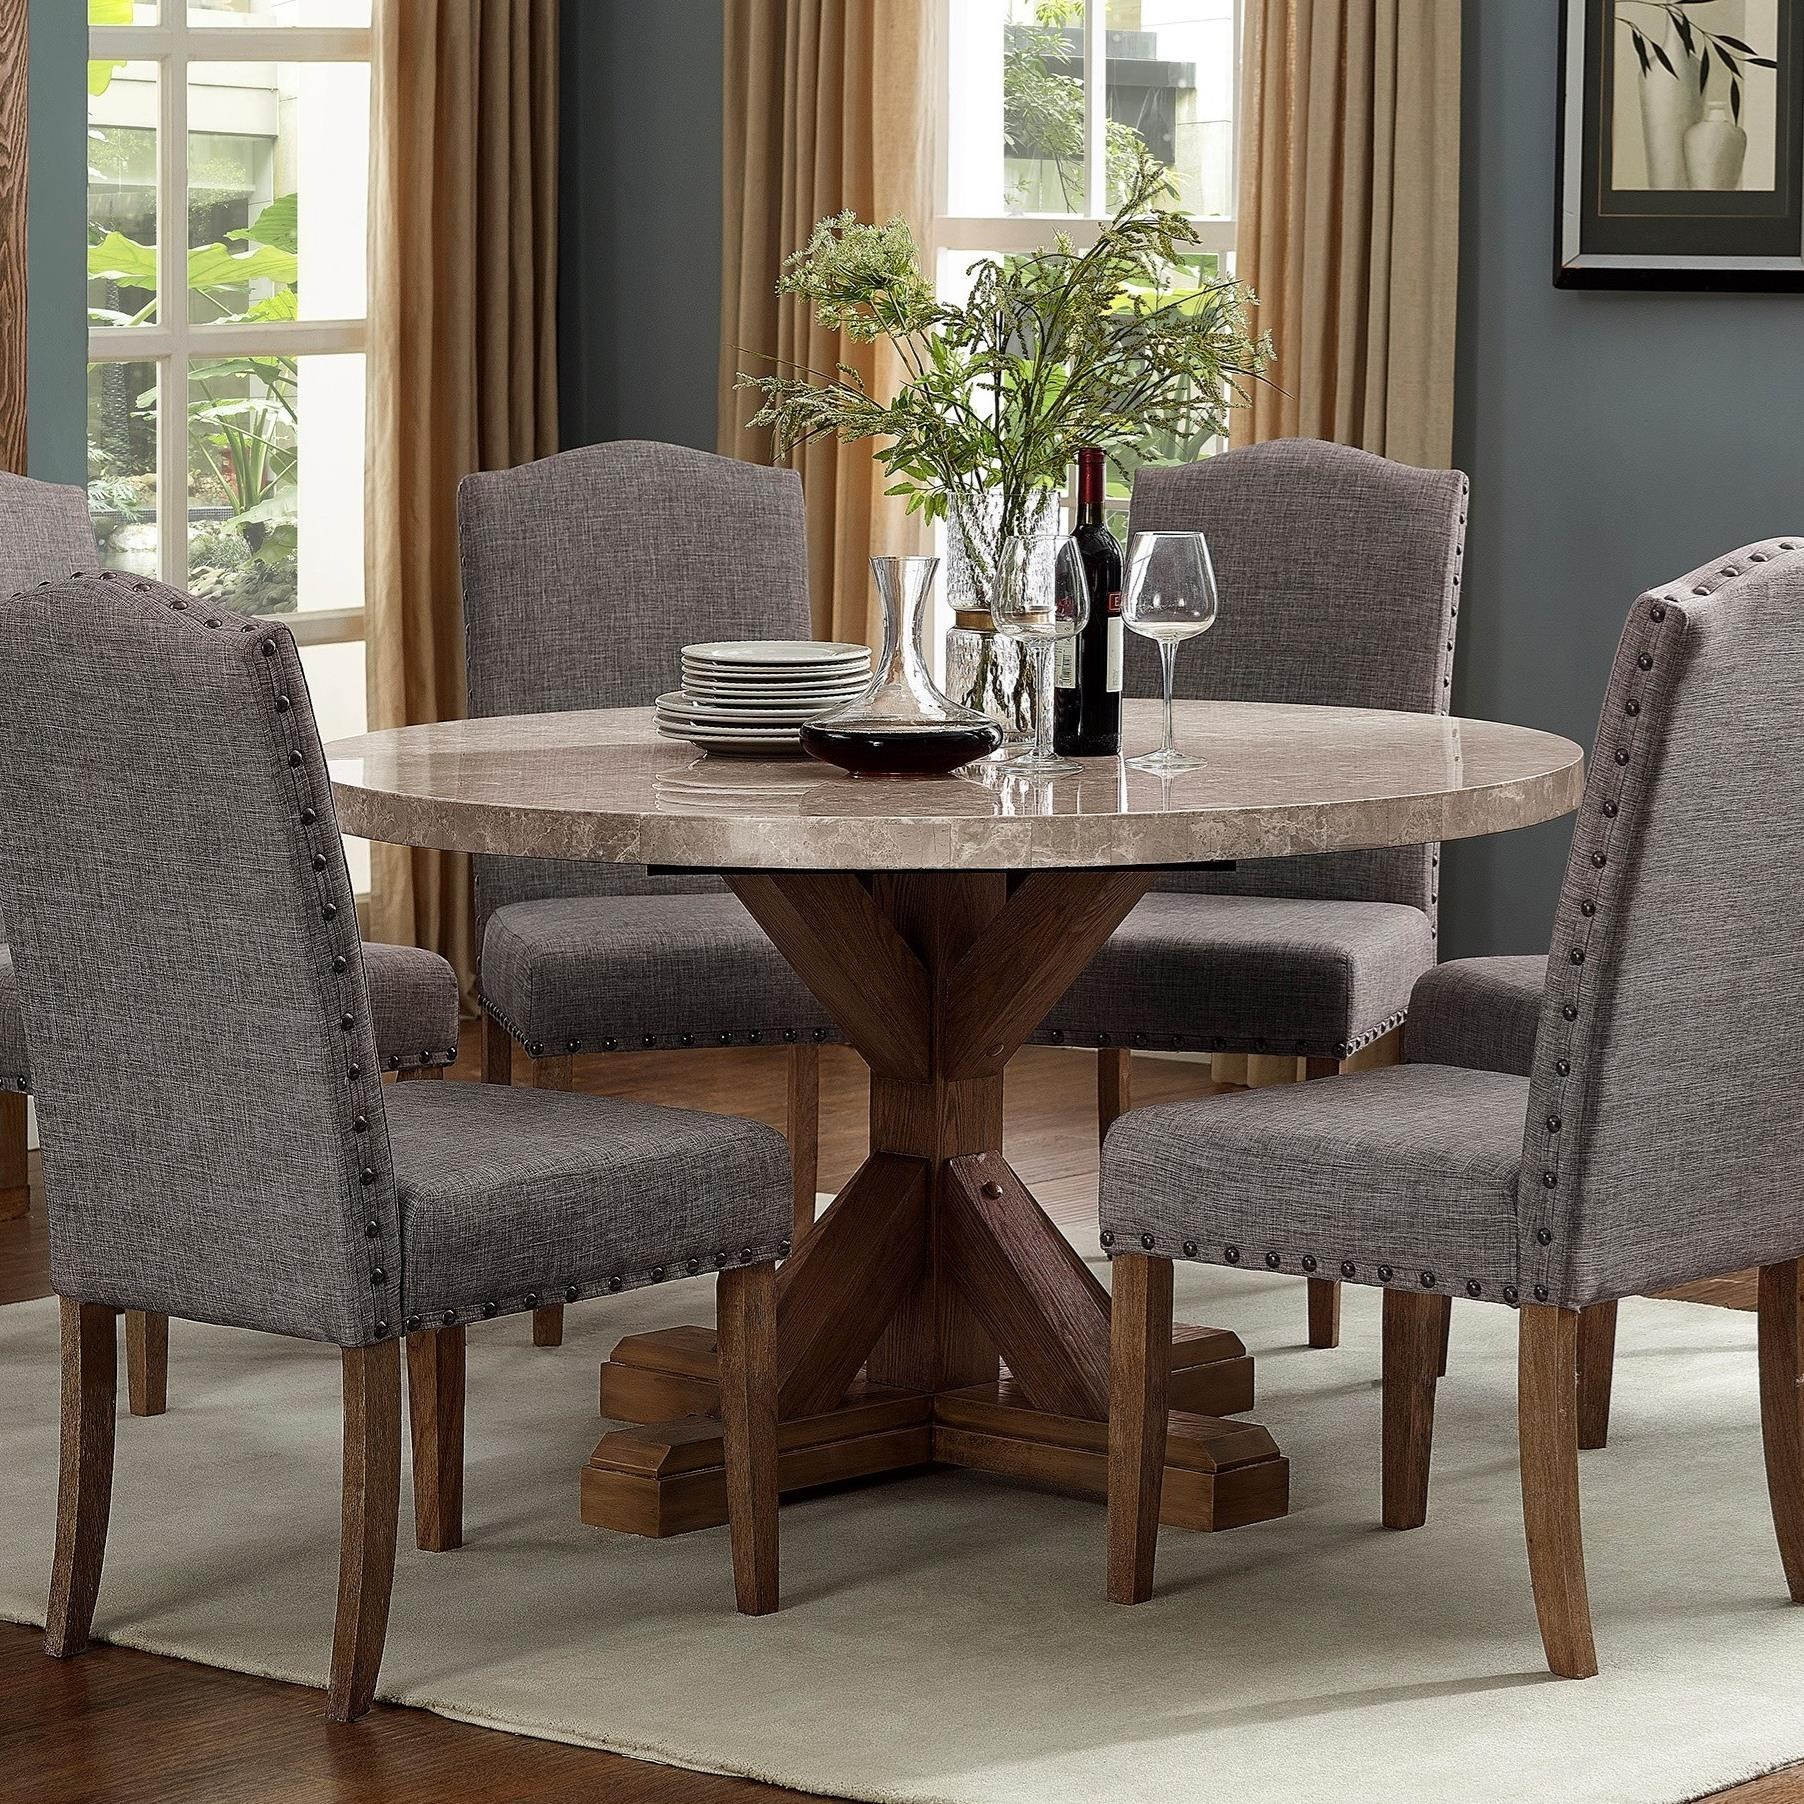 Table Kitchen Vesper Dining Round Dining Table With Pedestal Base By Crown Mark At Dunk Bright Furniture